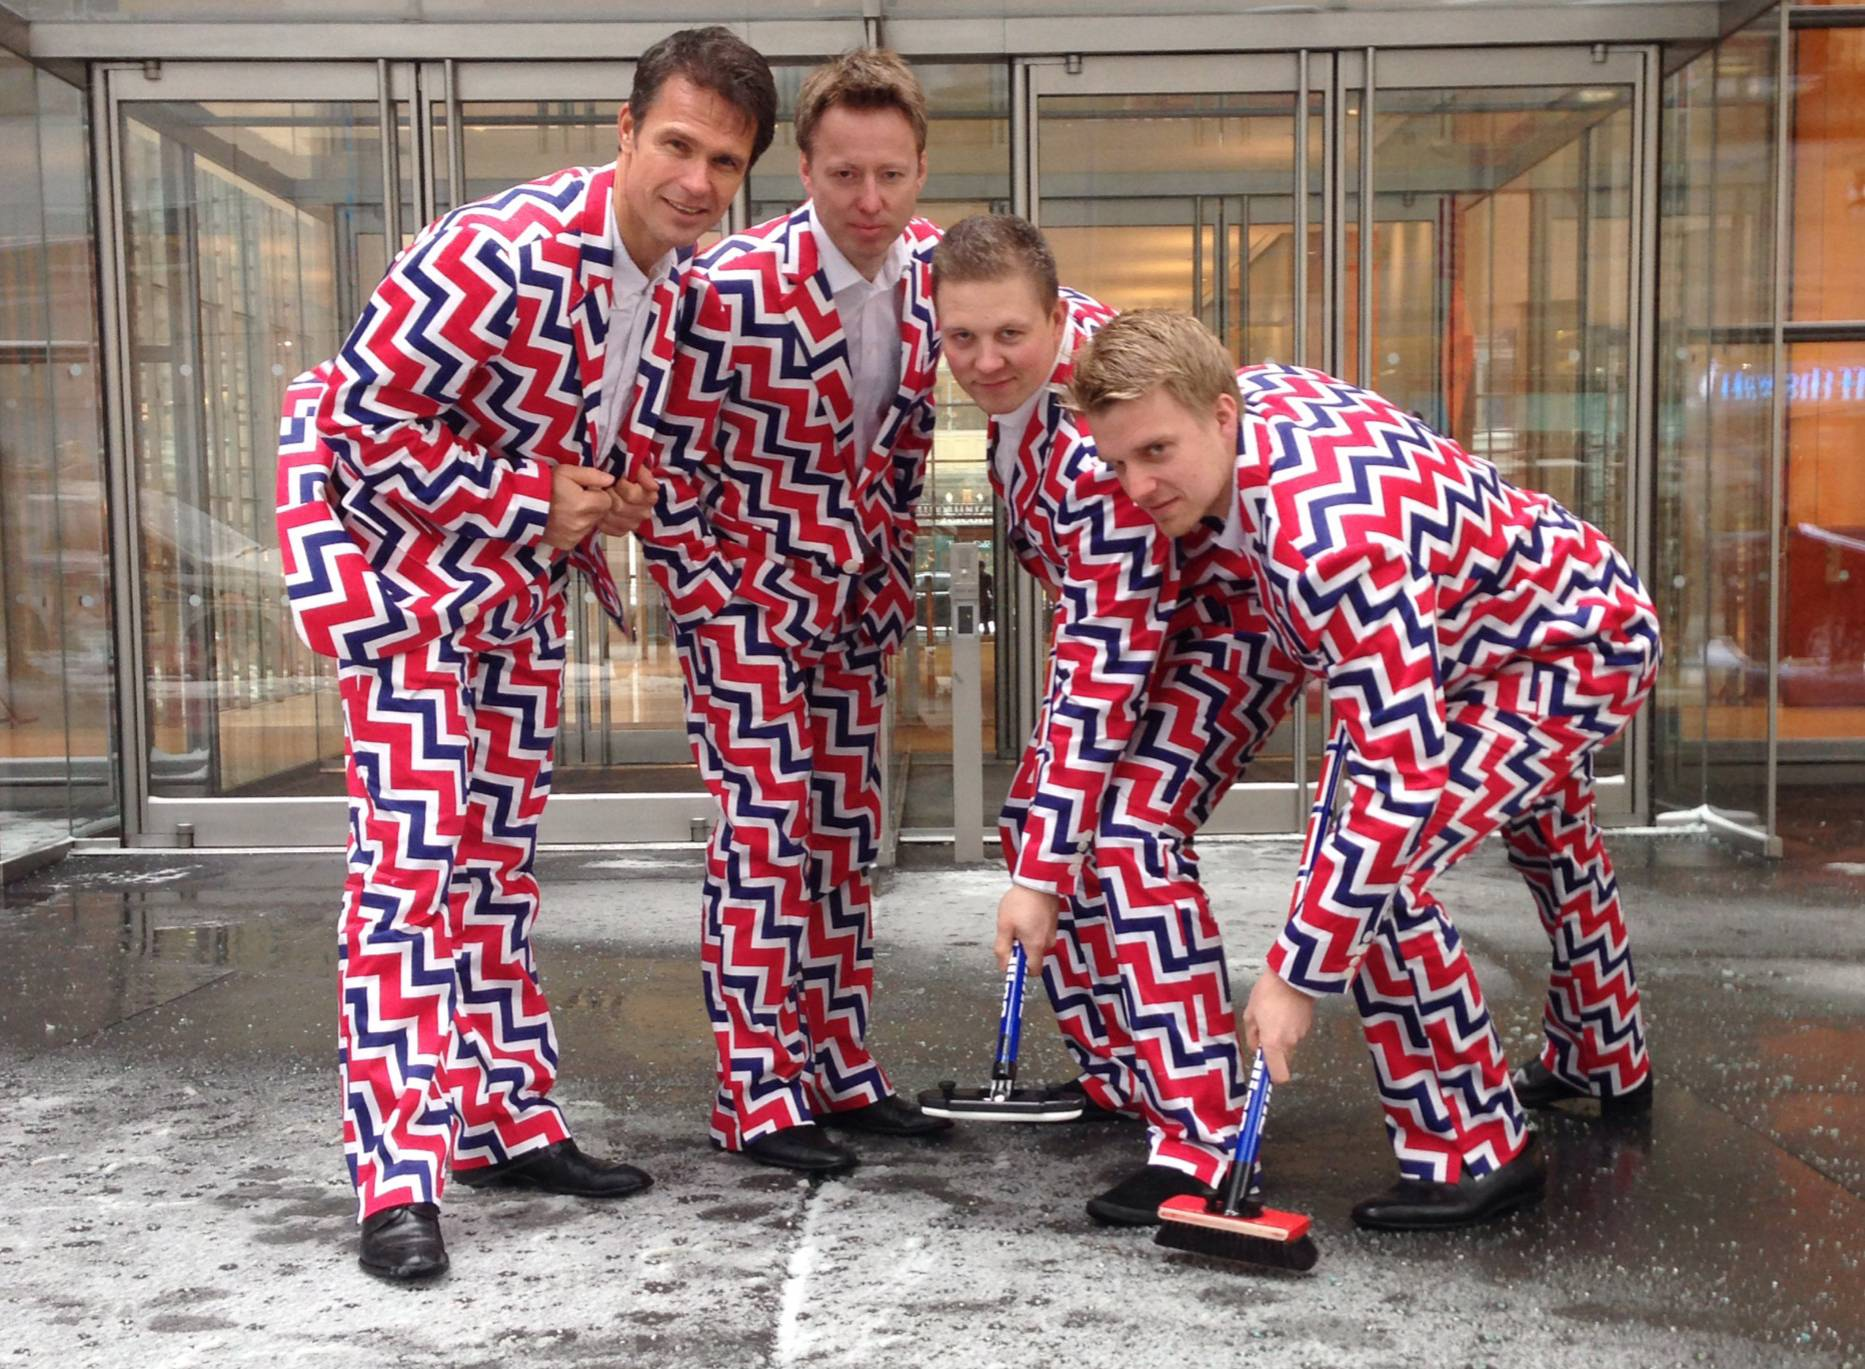 Associated PressMembers of the Norway's Men's Olympic Curling Team from left, Thomas Ulsrud, Torgor Nergard, Christoffer Svae, and Havard Vad Petersson wear their new Sochi 2014 suits as they pose for a photographer in New York.